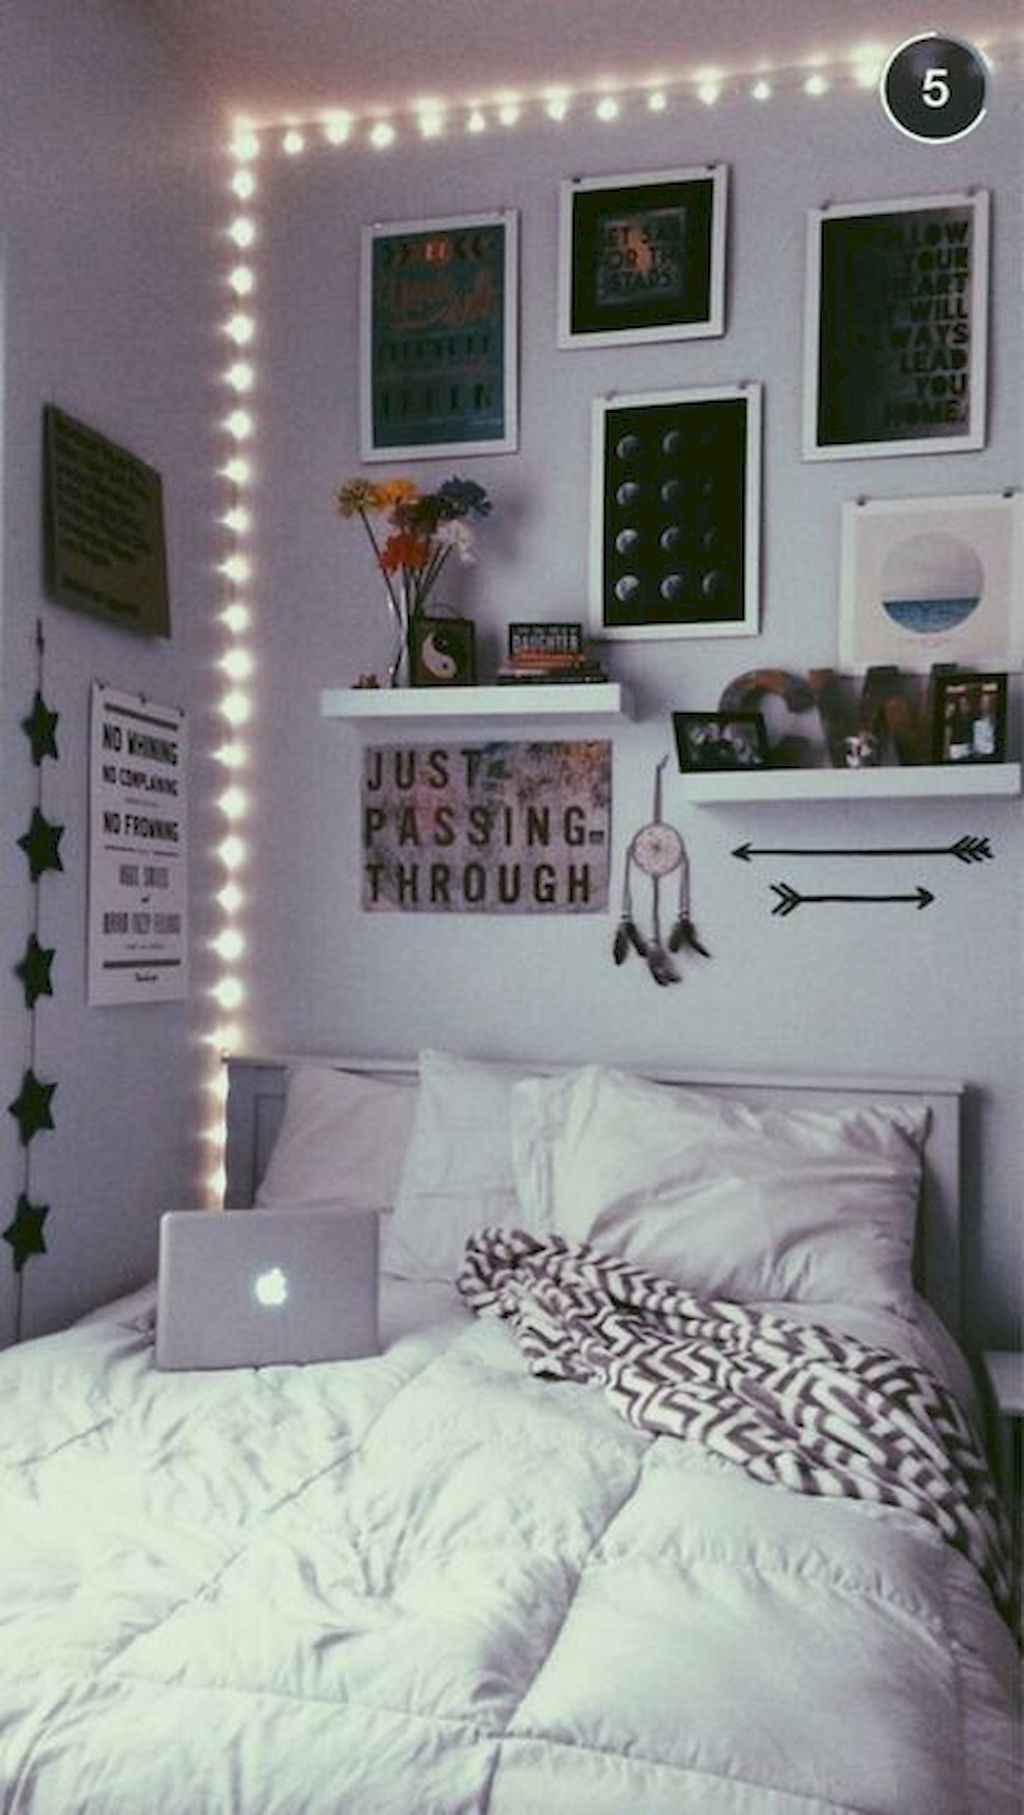 Awesome bedroom decoration ideas (12)